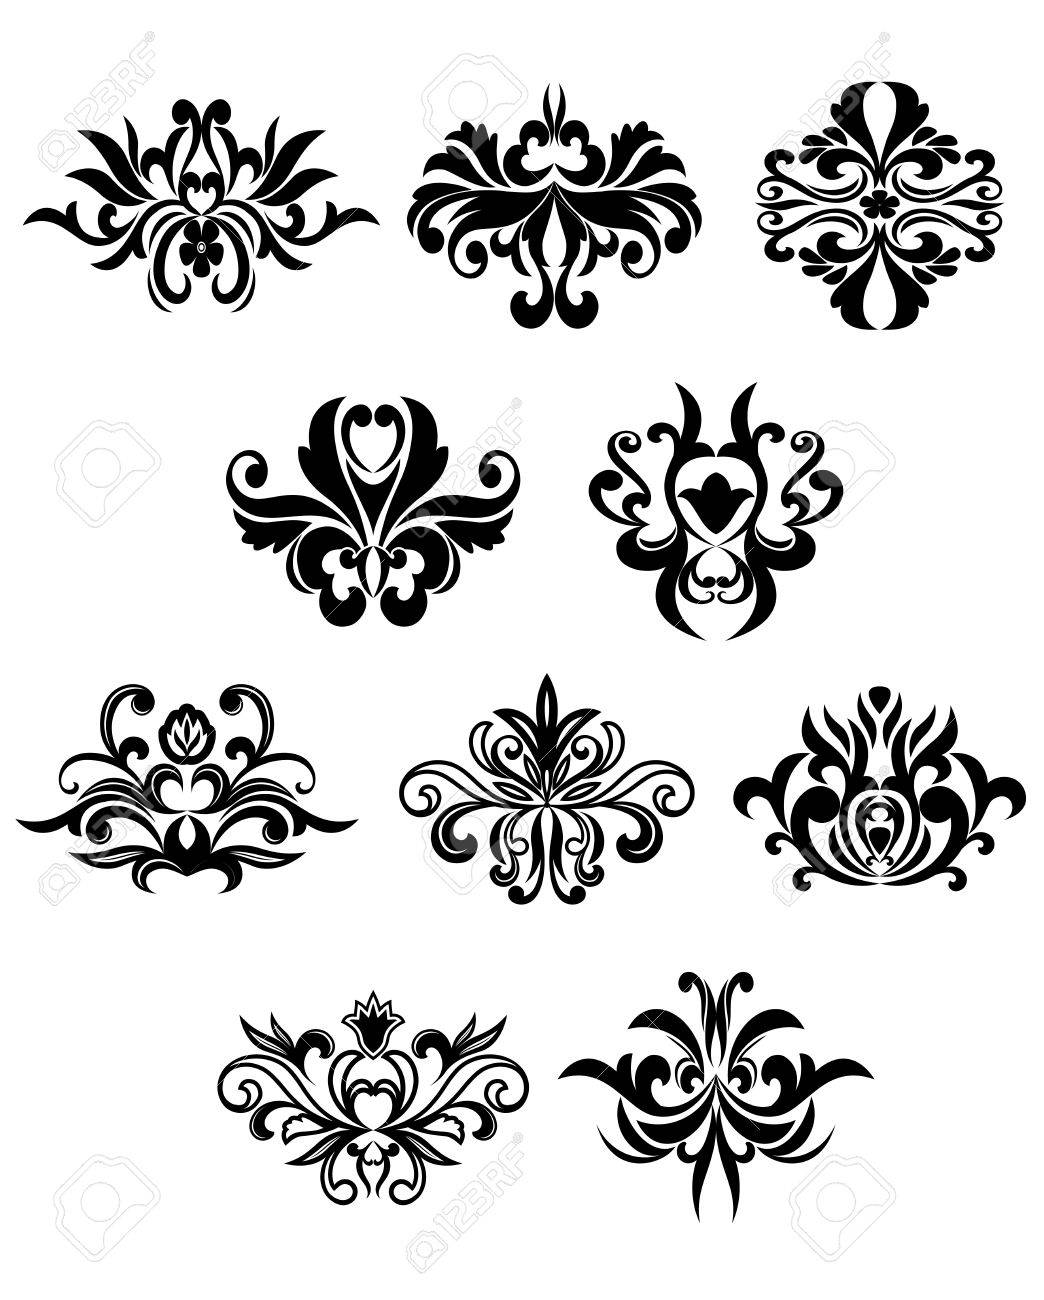 80a1e22e005 Flourish design elements in damask style showing black curly abstract  flowers isolated on white background suitable